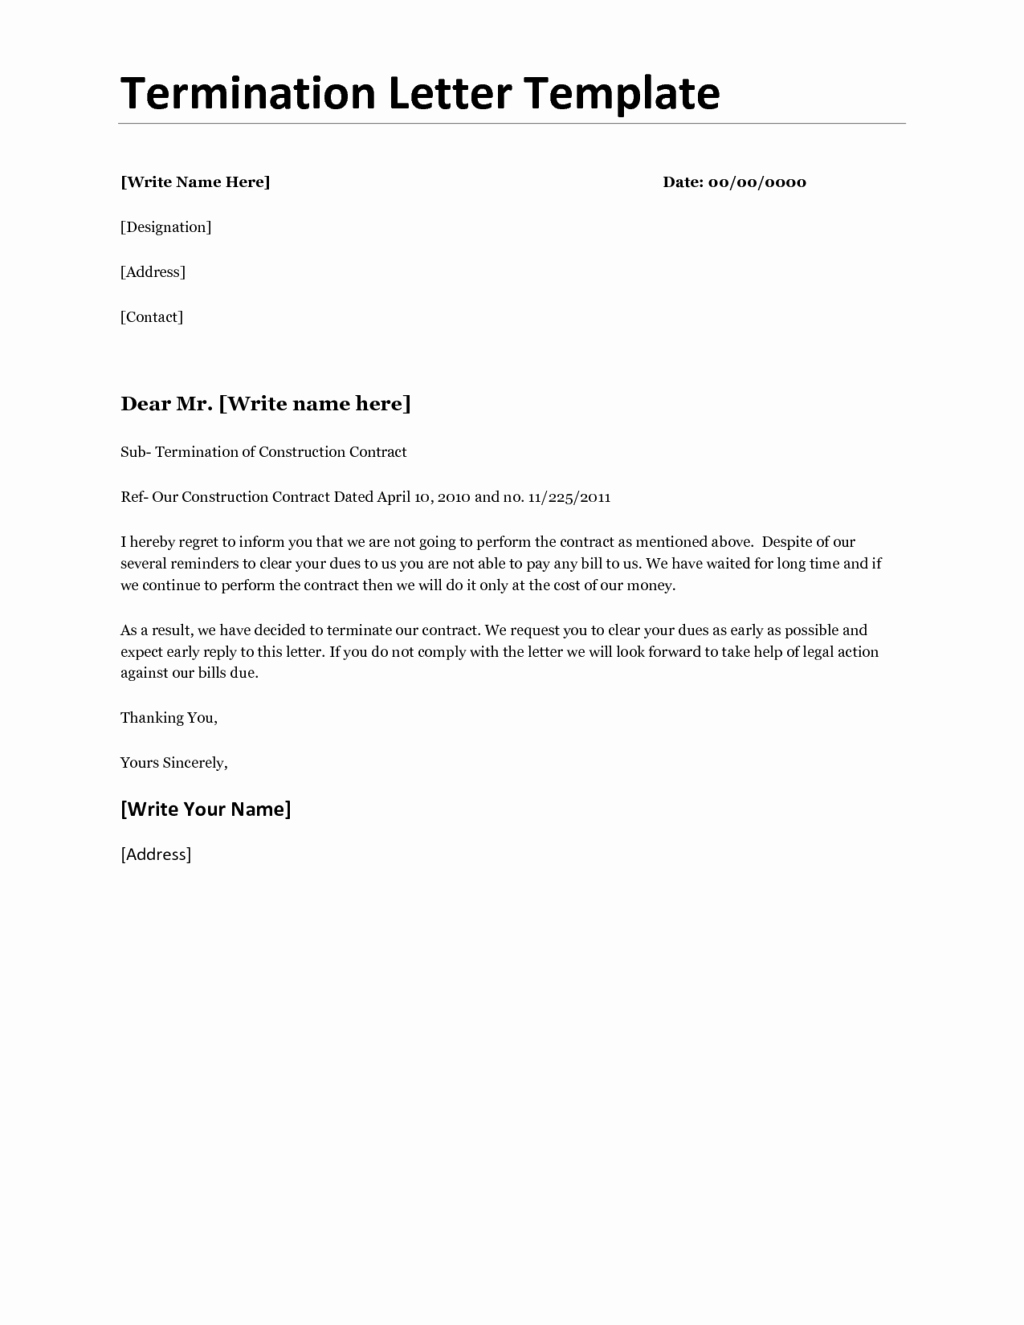 Letter to Terminate Business Relationship Unique Business Contract Termination Letter for Non Renewal